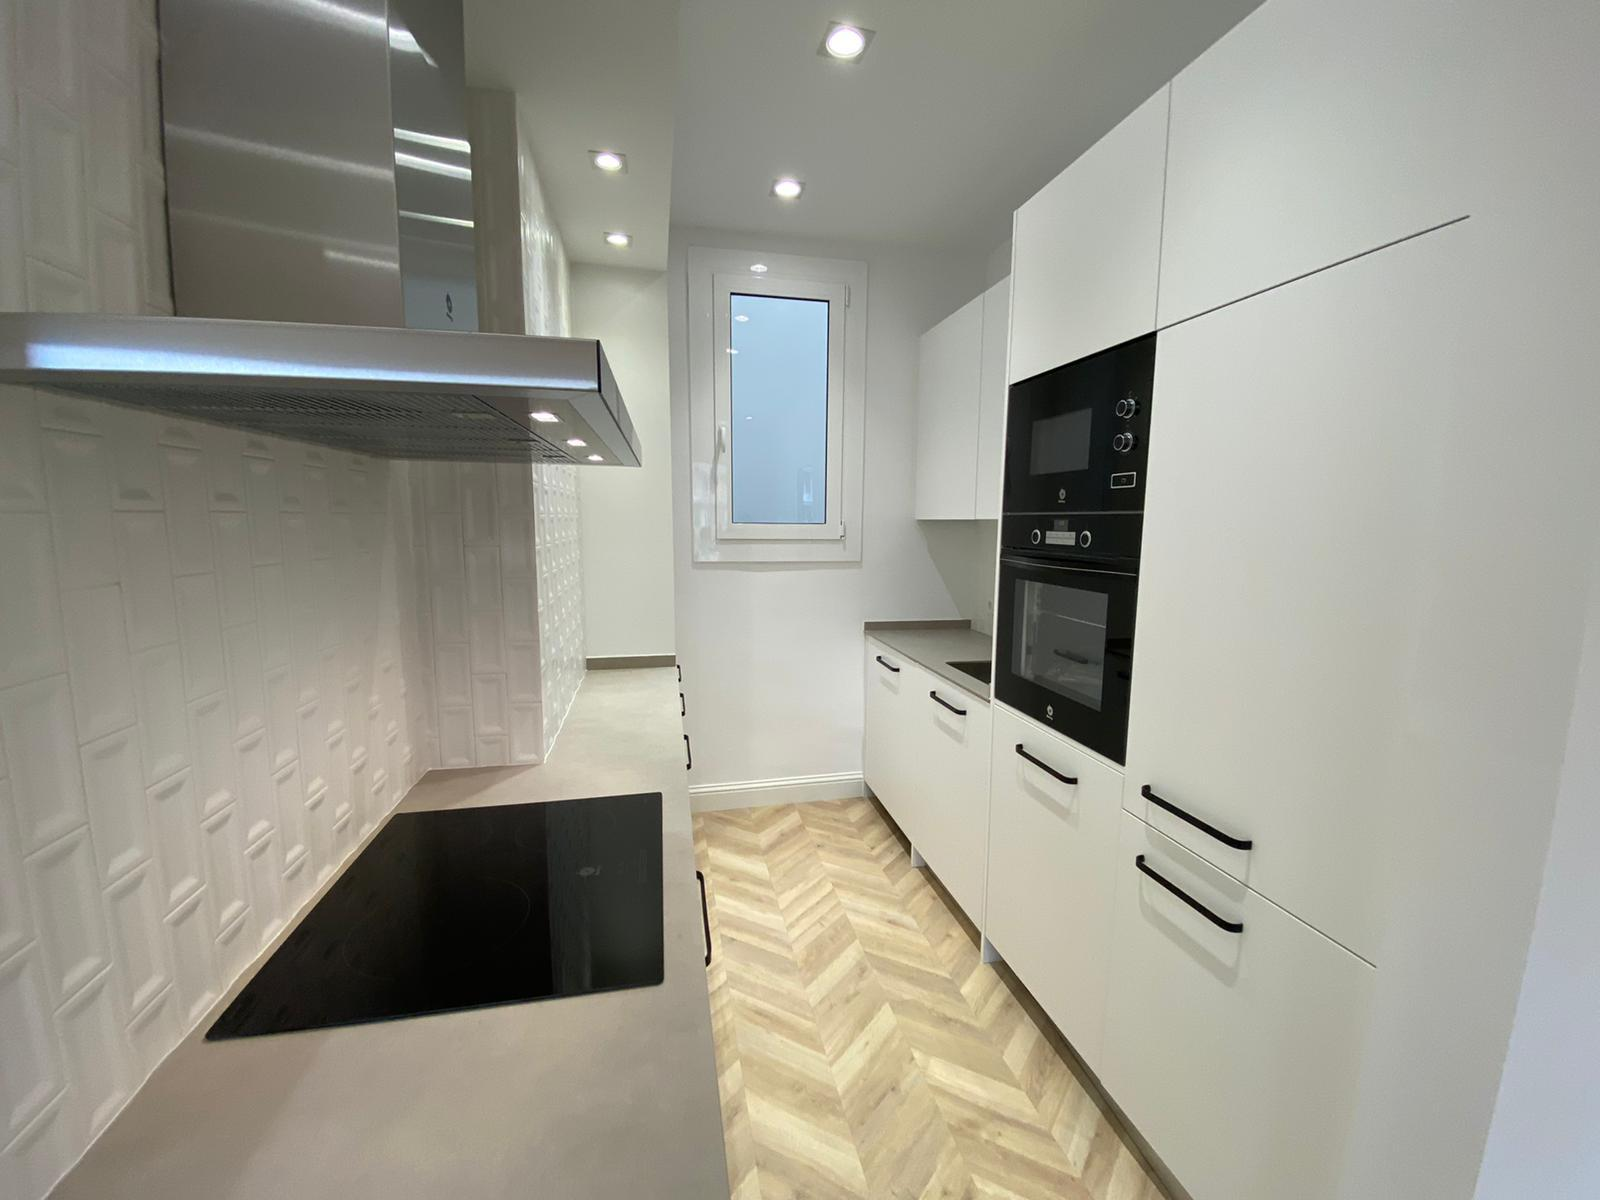 241064 Flat for sale in Gràcia, Camp Grassot and Gràcia Nova 3